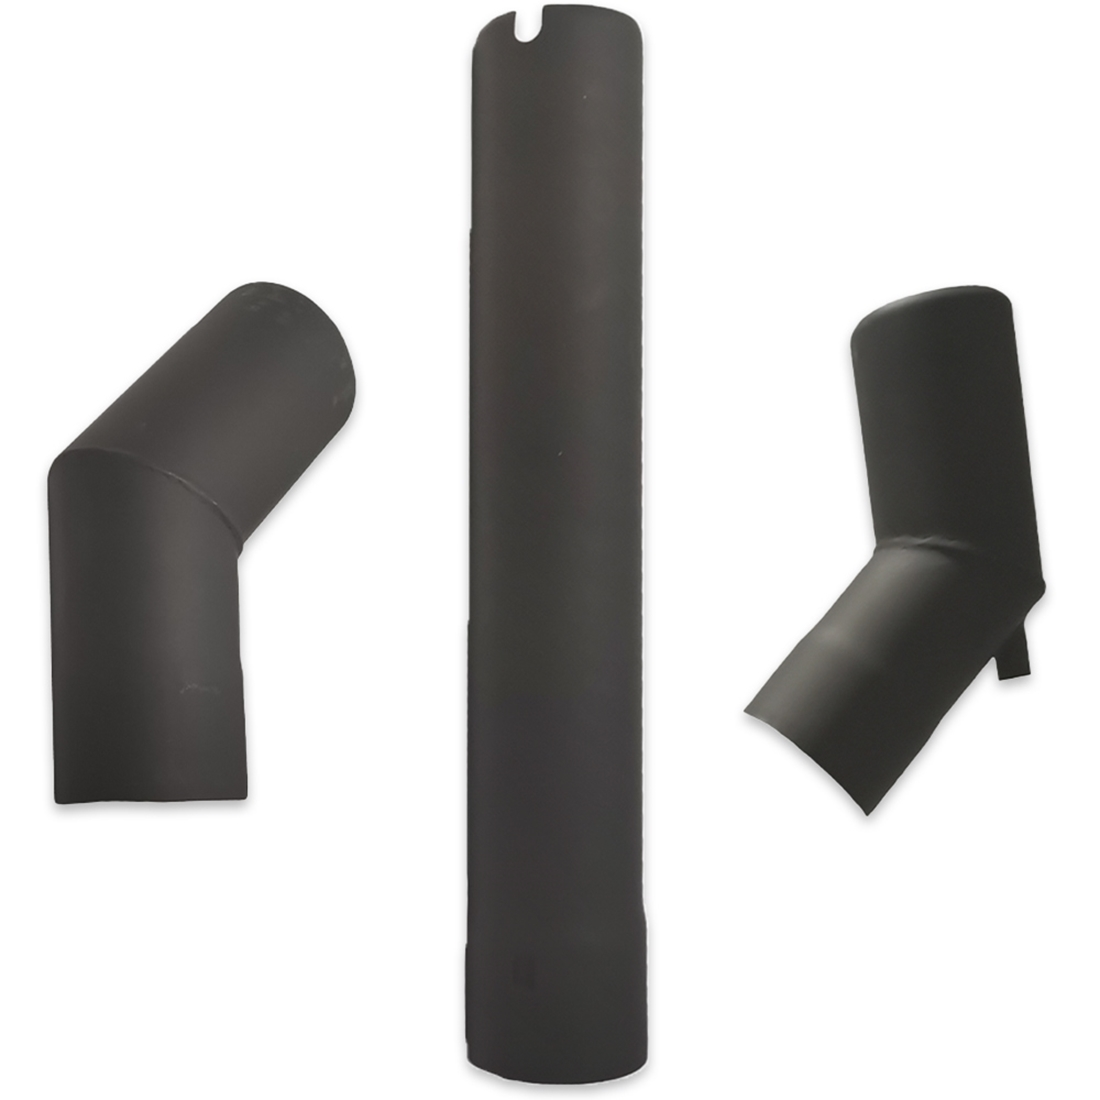 Ozpig Big Pig Offset Chimney 3 Pieces